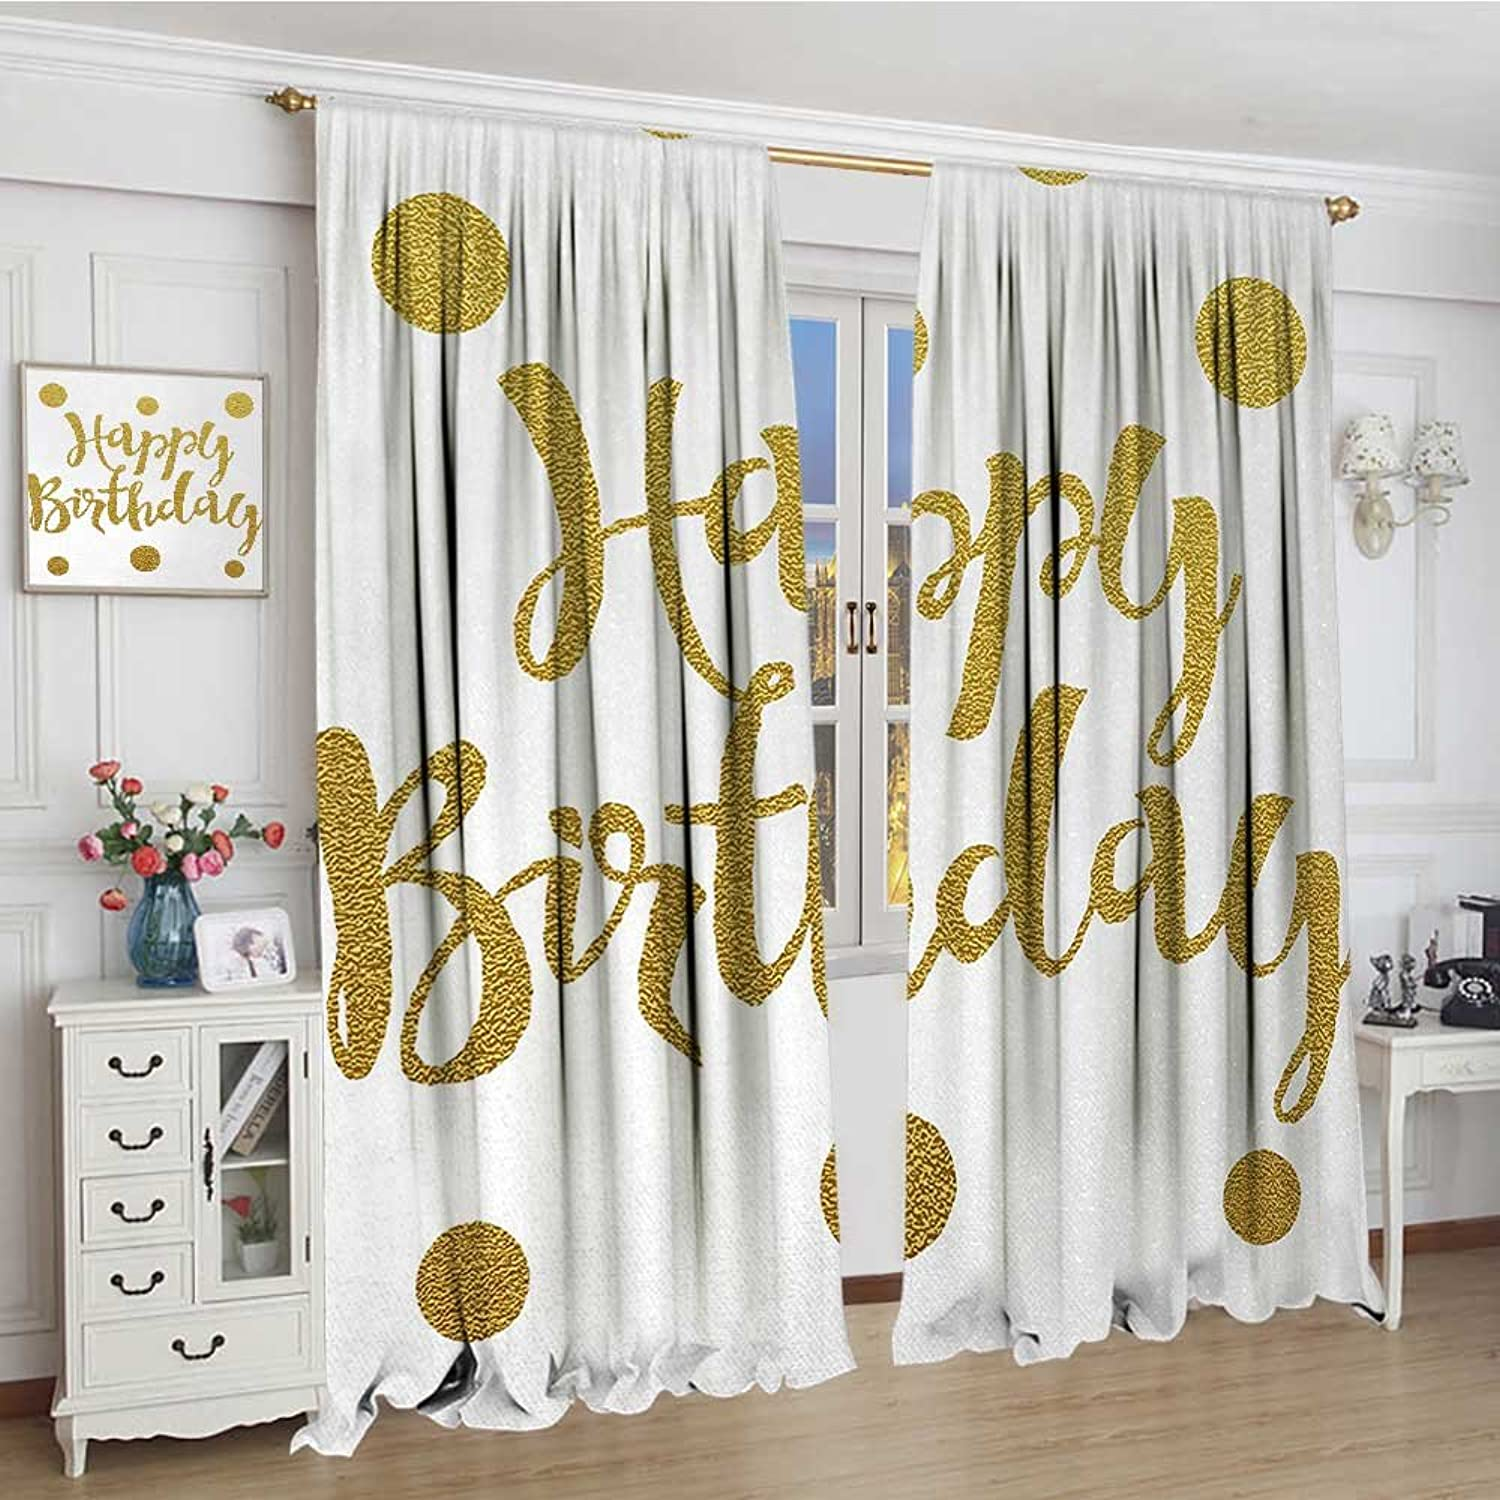 Smallbeefly Birthday Thermal Insulating Blackout Curtain Hand Writing Style Calligraphic Text Celebration Design Polka Dots Old Fashioned Decorative Curtains for Living Room 96 x96  Yellow White